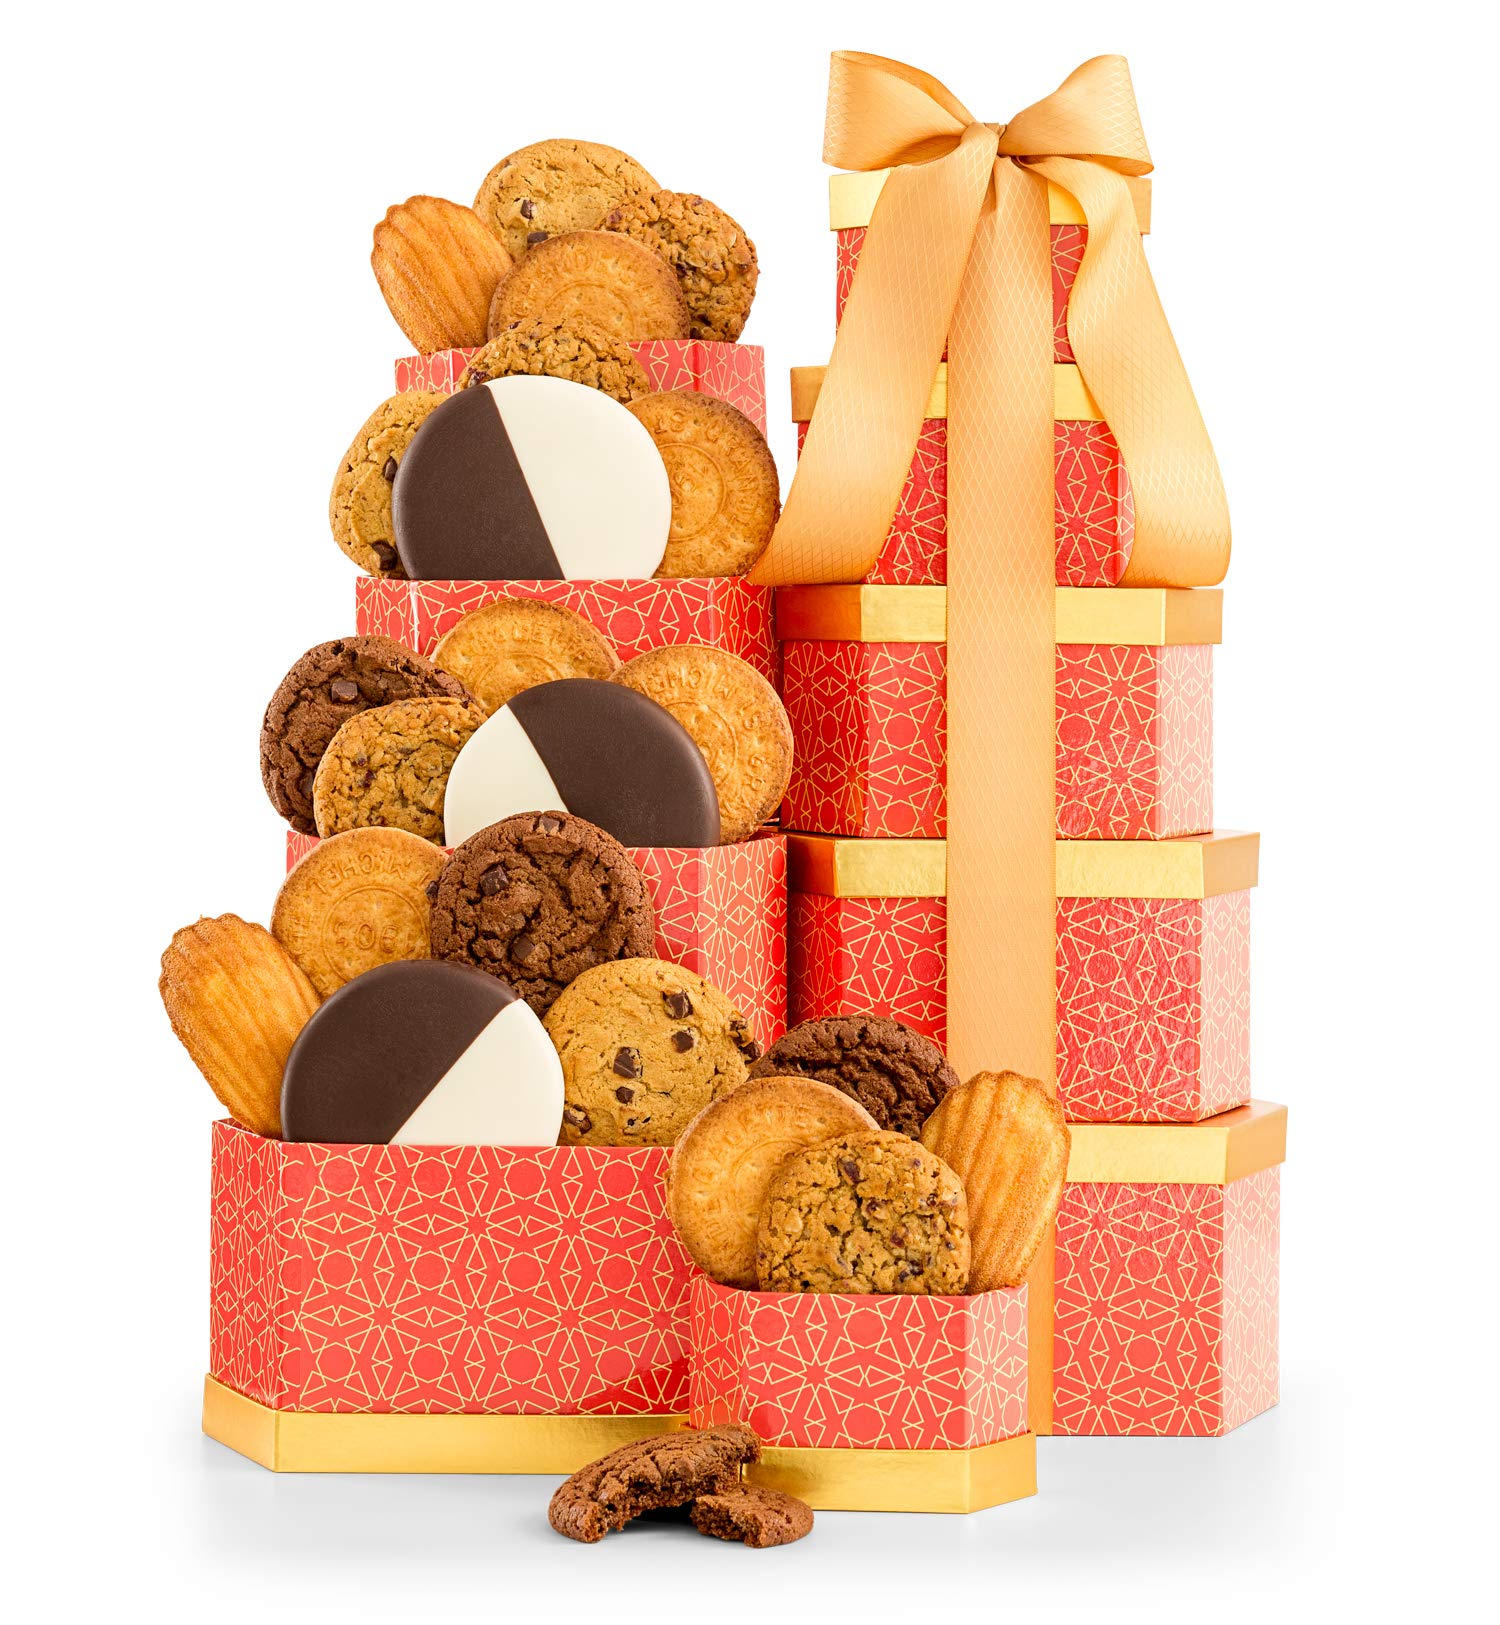 GiftTree Cookie Classics Tower | Chocolate Brownie, Cranberry Oatmeal, Chocolate Chunk & More | Five (5) Box Tower | Sweet Gift For Someone Special